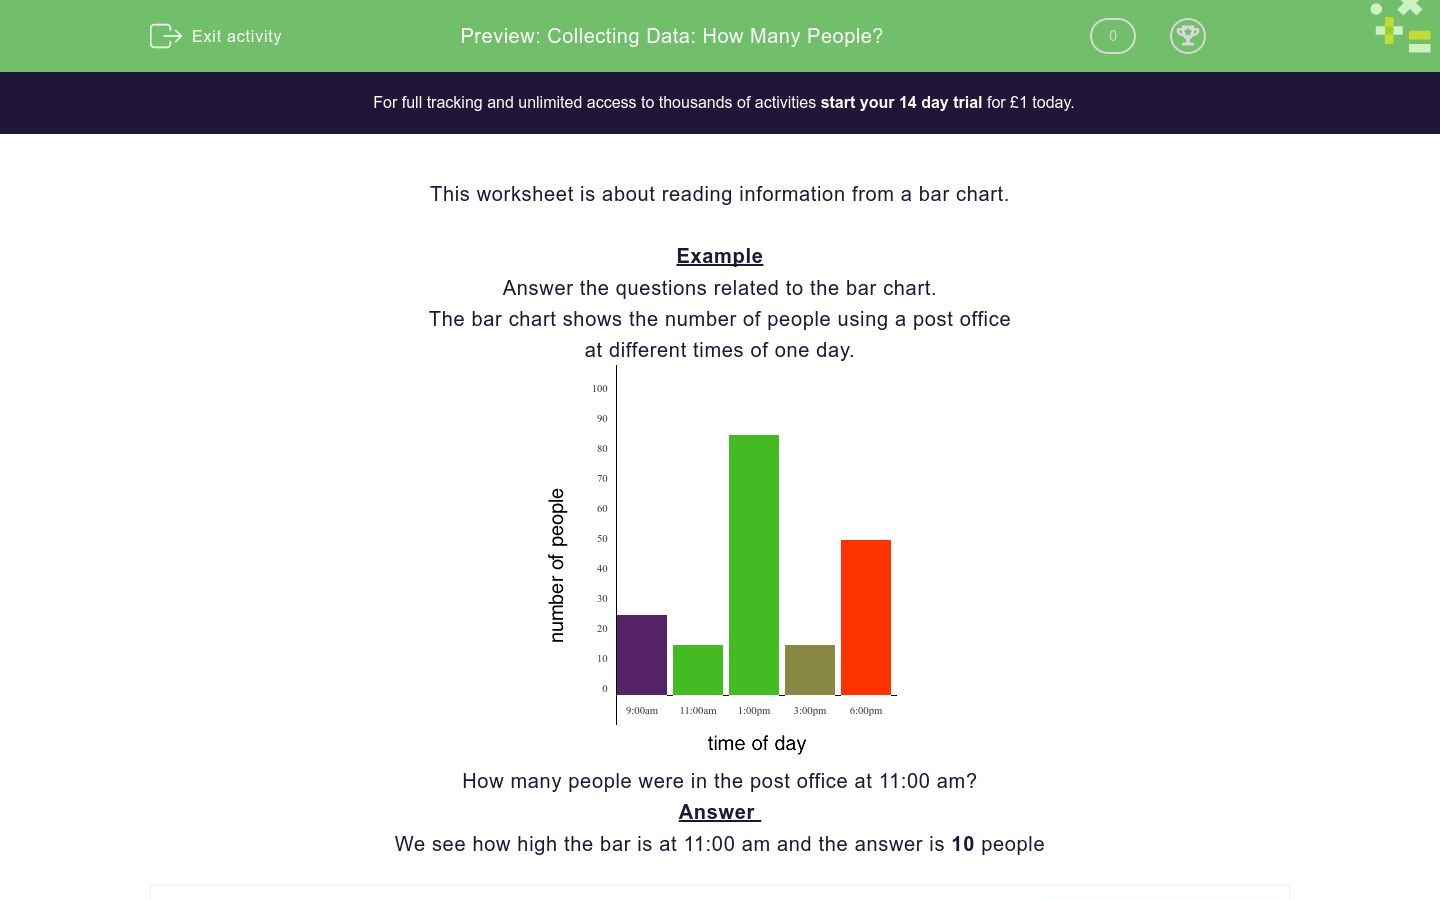 'Collecting Data: How Many People?' worksheet